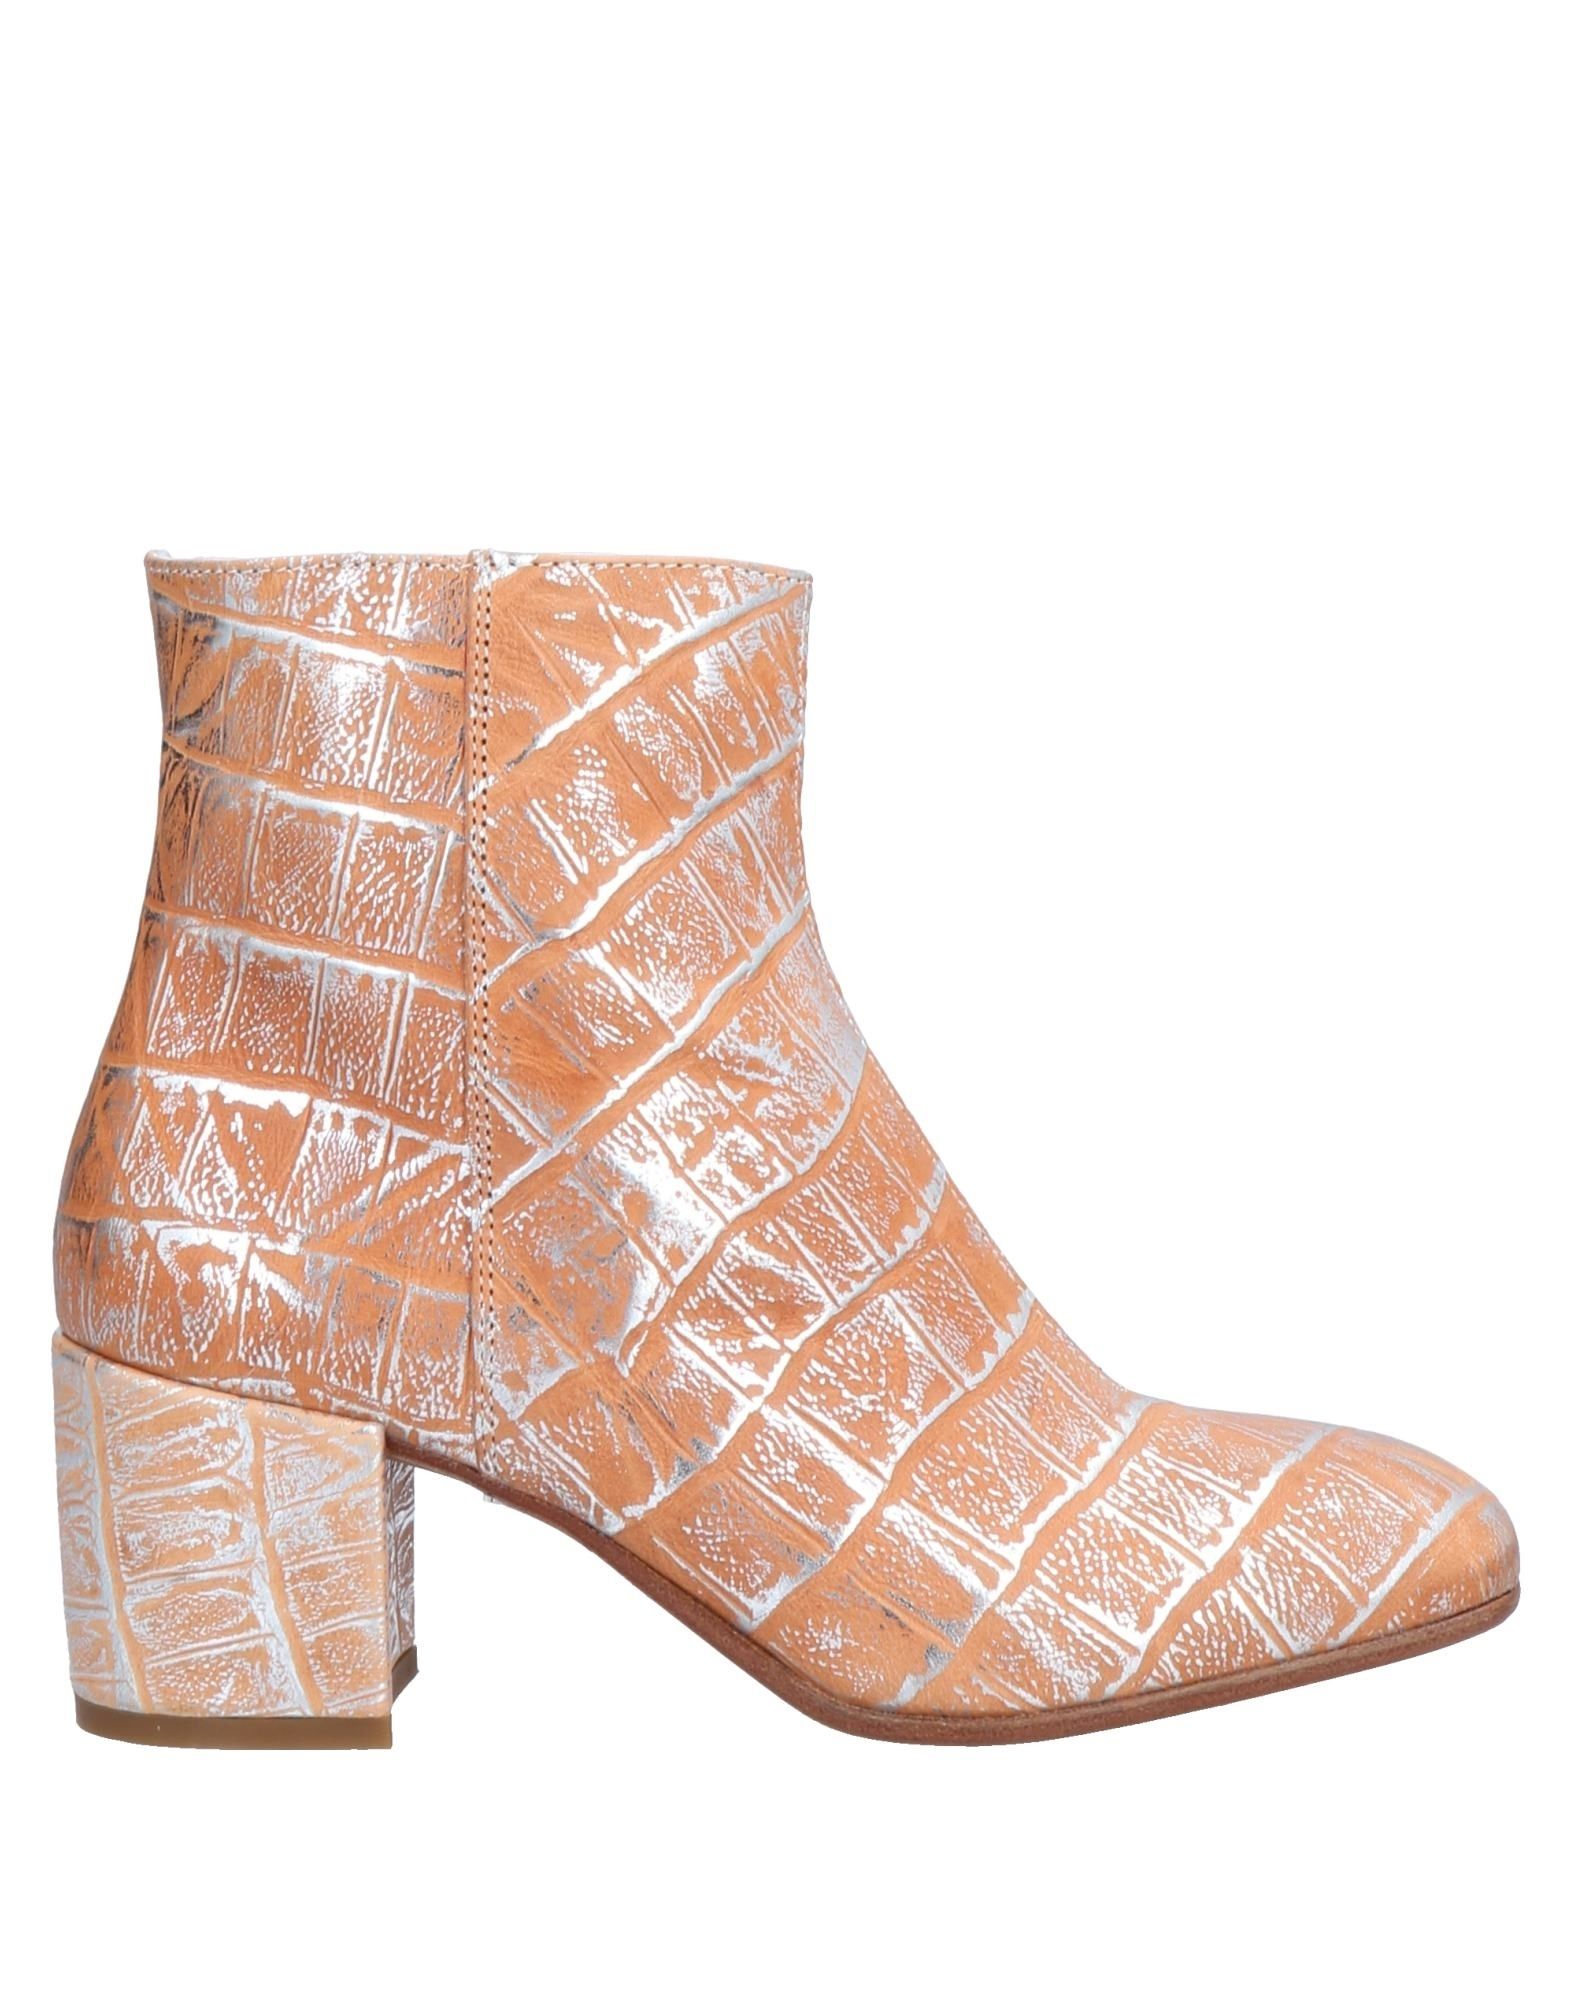 meet c381d cf78a Ankle Boots in Sand